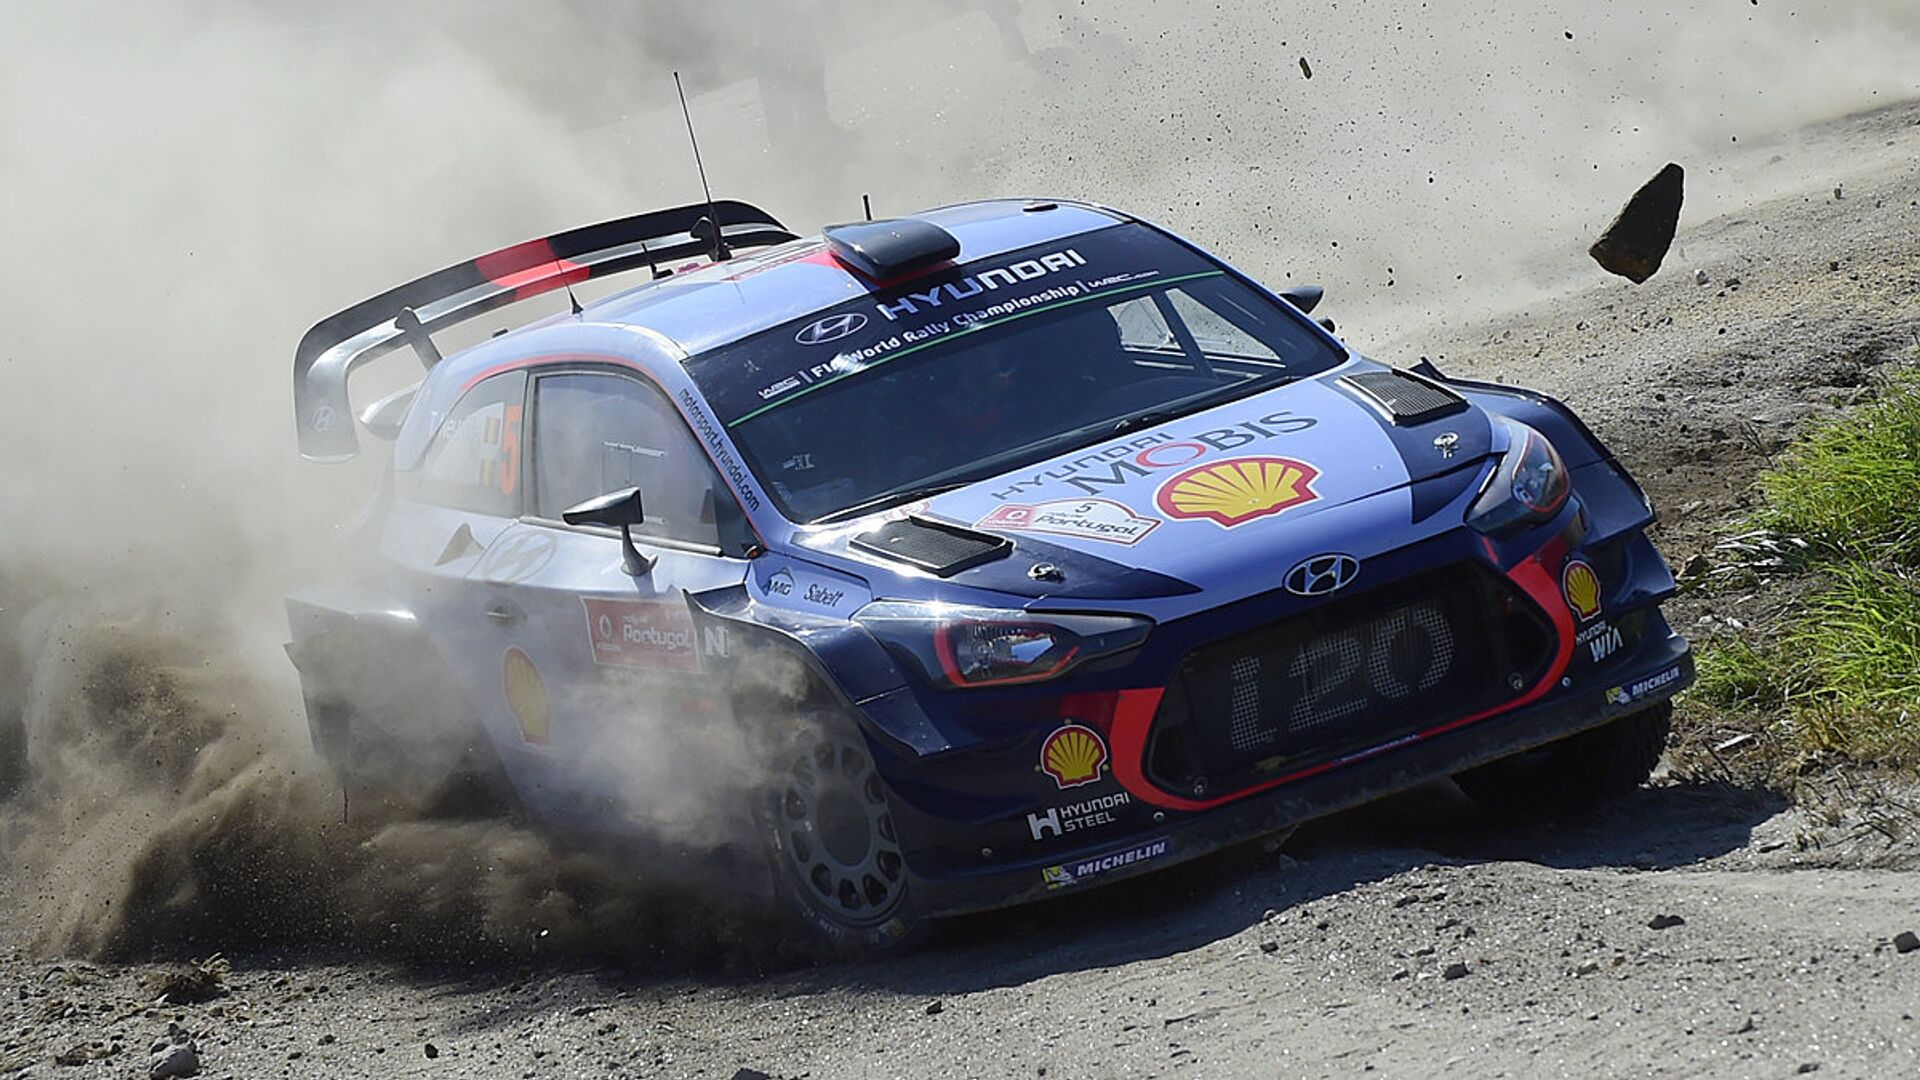 Belgian driver and co-driver, Thierry Neuville and Nicolas Gilsoul, steer their Hyundai i20 Coupe in Caminha, northern Portuga - Sputnik Oʻzbekiston, 1920, 13.03.2021